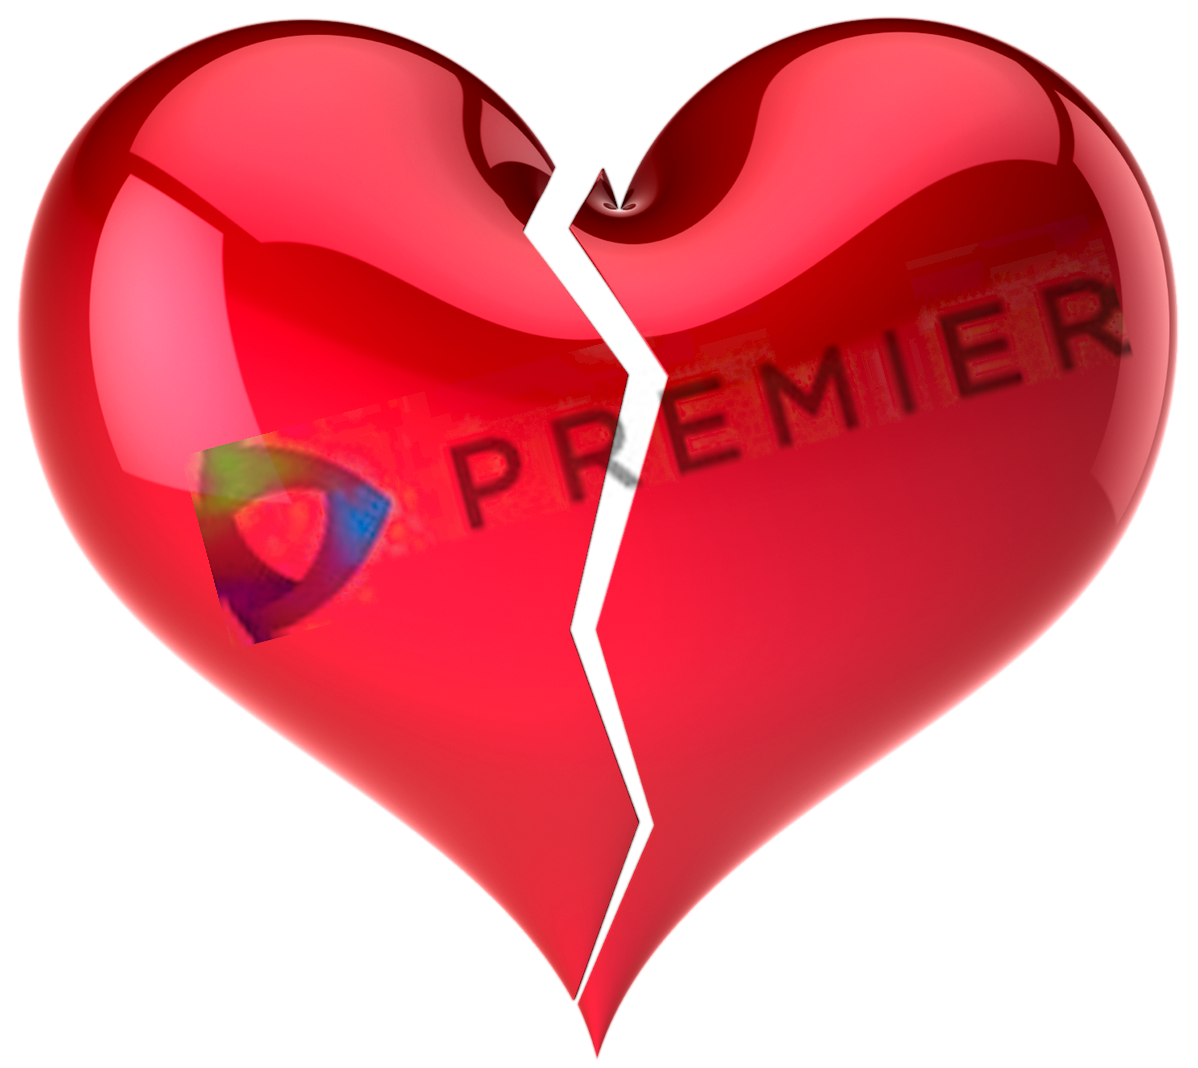 Am I Next? Layoffs at Premier, Inc., purveyors of healthcare services and consulting.